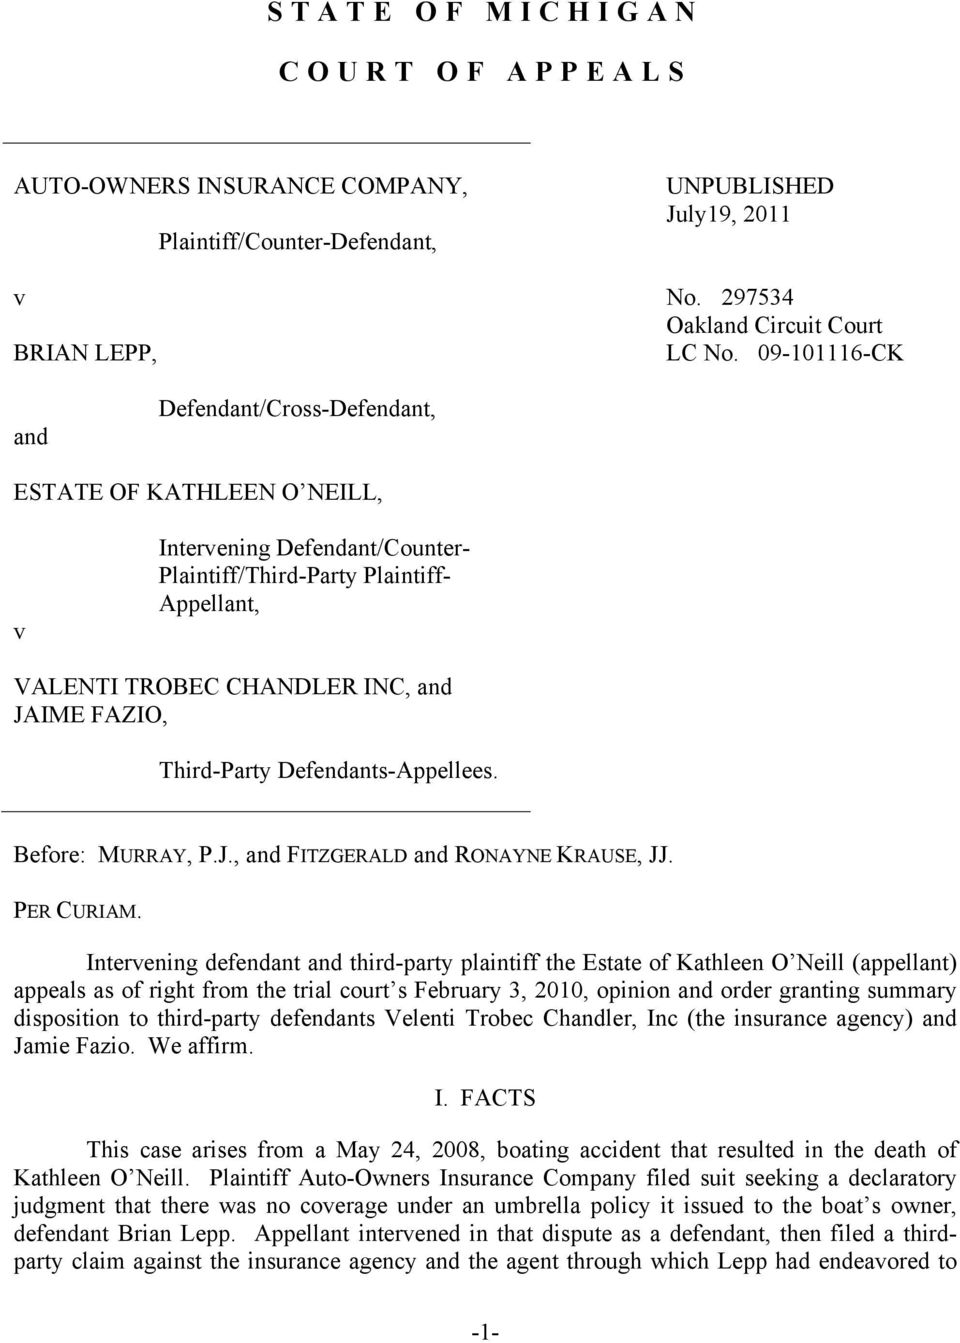 Third-Party Defendants-Appellees. Before: MURRAY, P.J., and FITZGERALD and RONAYNE KRAUSE, JJ. PER CURIAM.